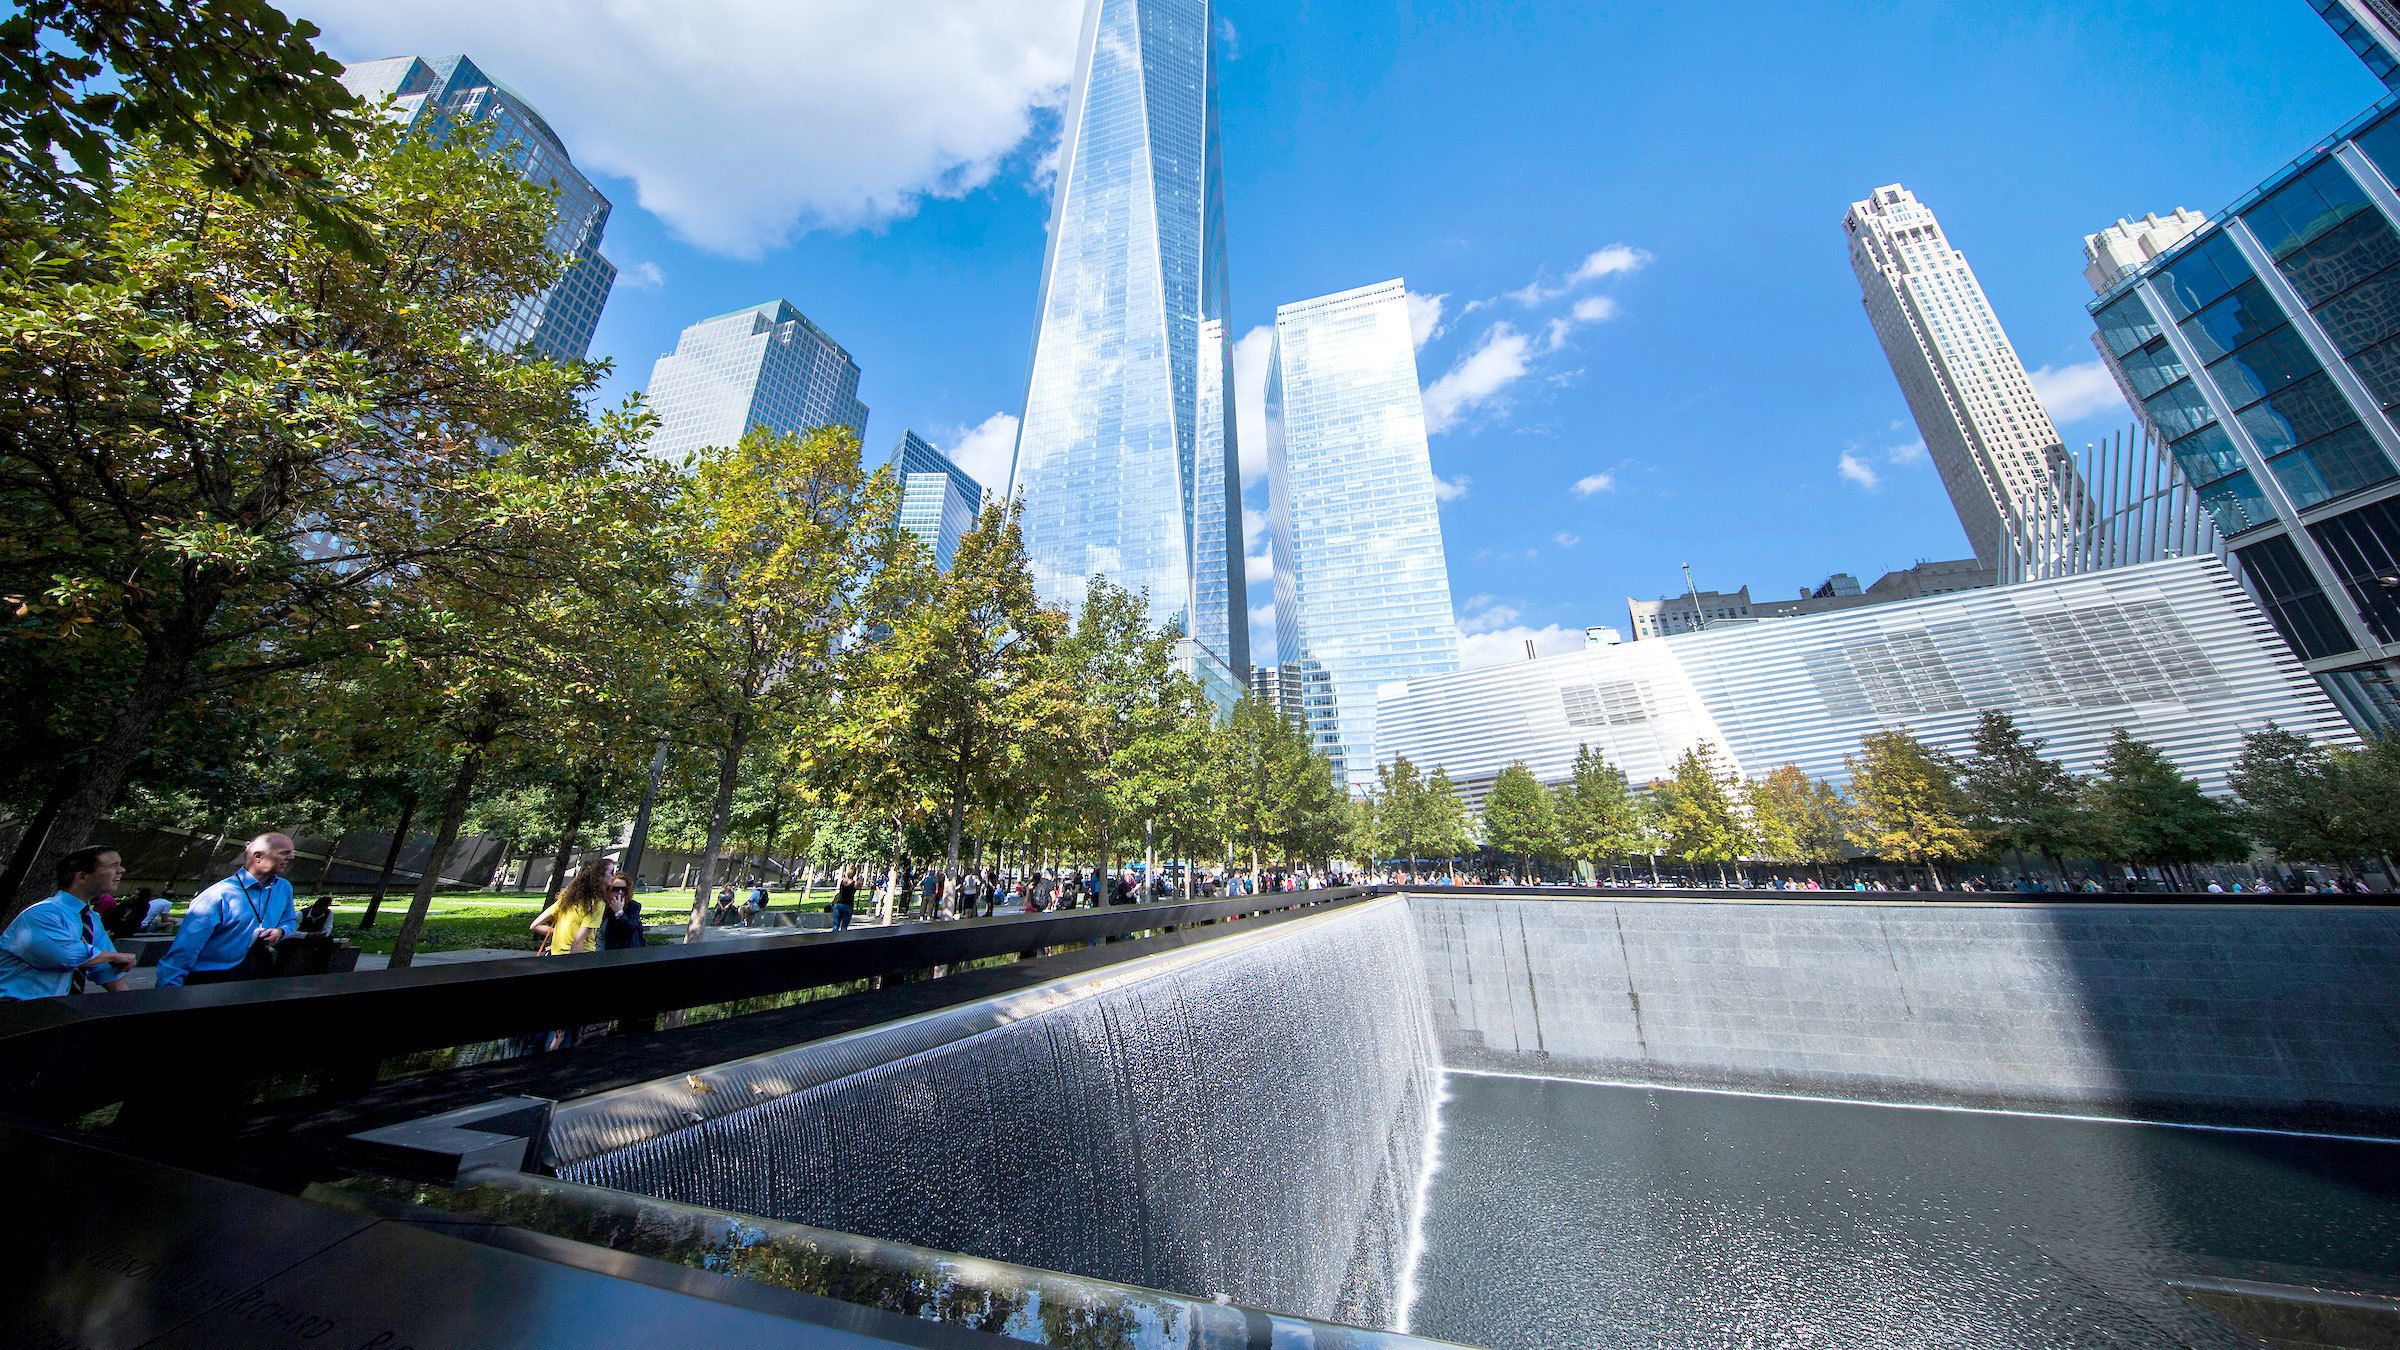 View of One World trade center and reflecting pool at the National September 11 Memorial Museum in New York